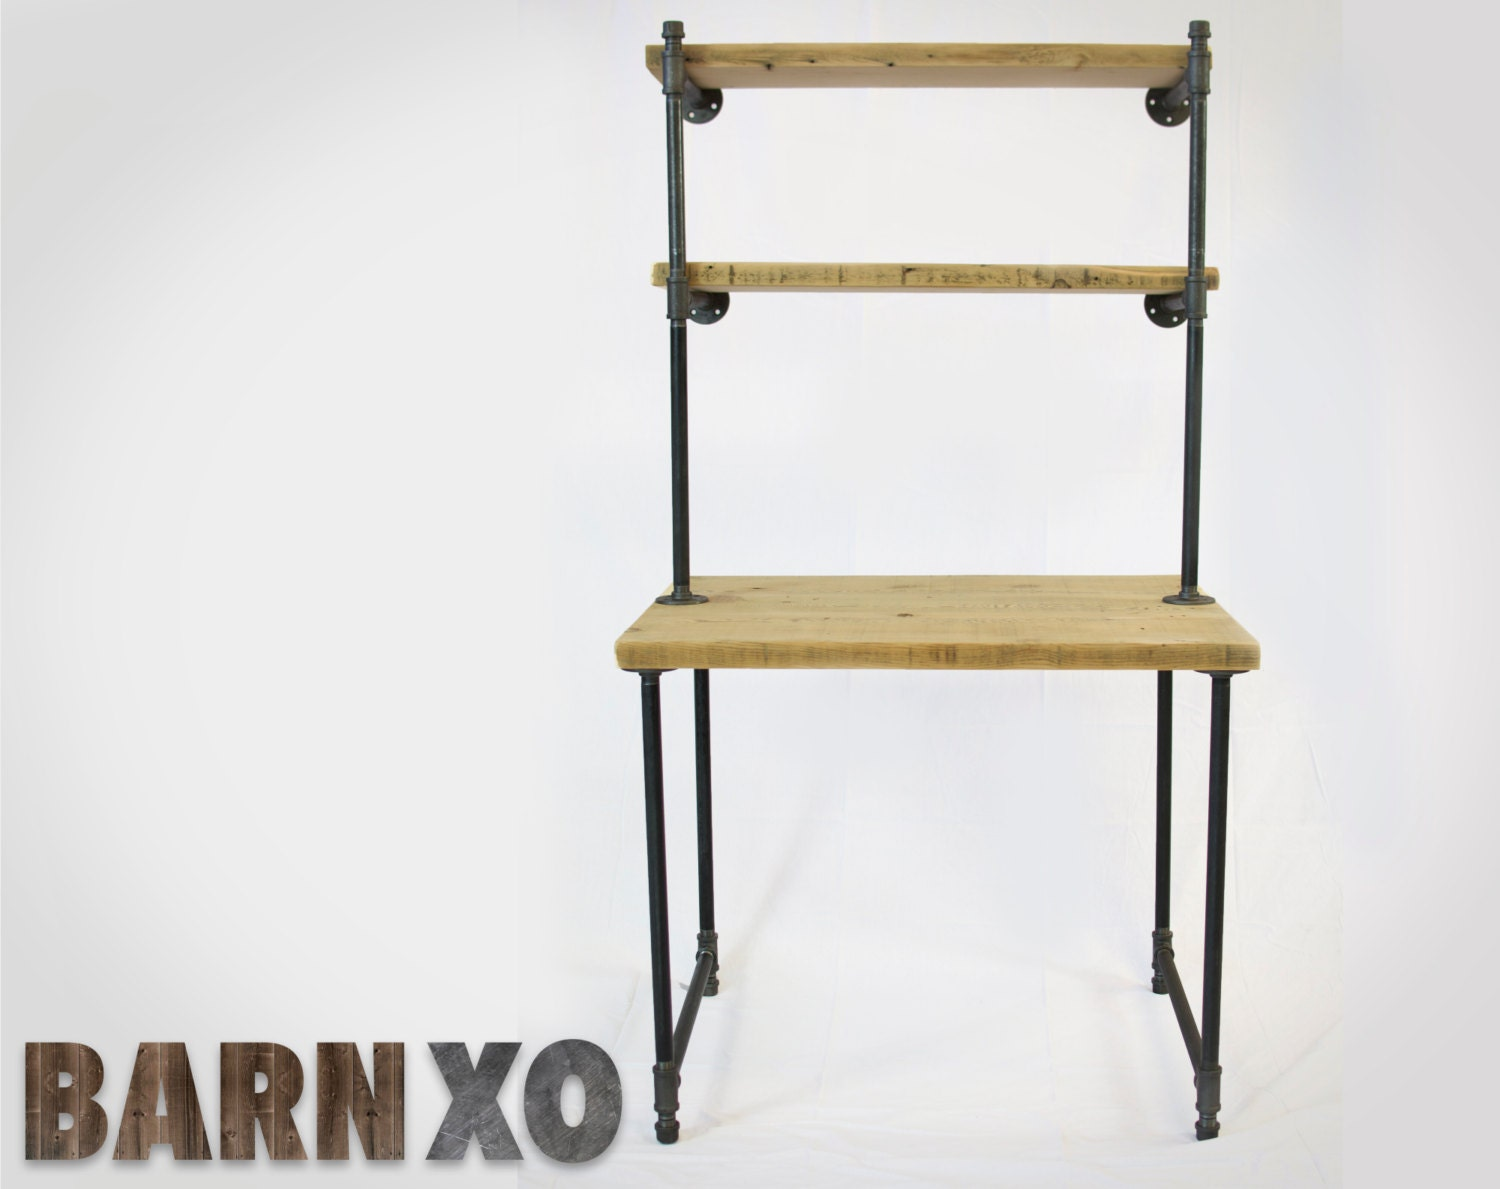 Very Impressive portraiture of Reclaimed Wood Computer Desk w/ 2 Shelves Industrial by barnxo with #8C723F color and 1500x1189 pixels